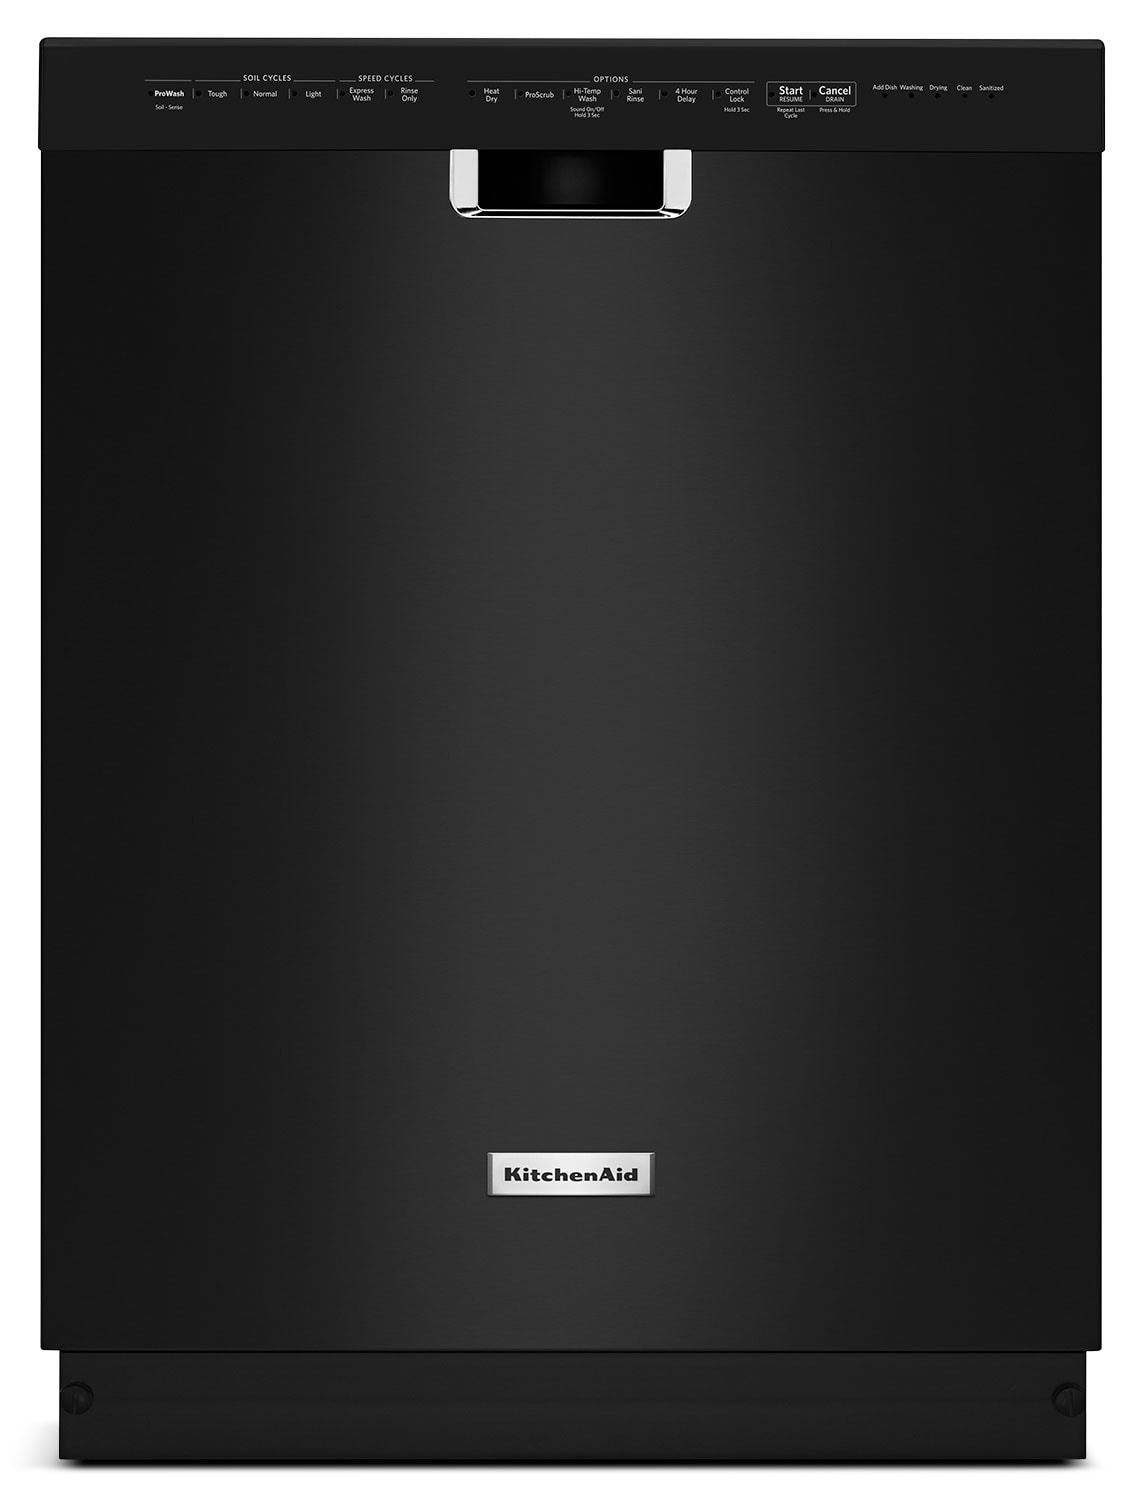 Clean-Up - KitchenAid Black Dishwasher - KDFE204EBL